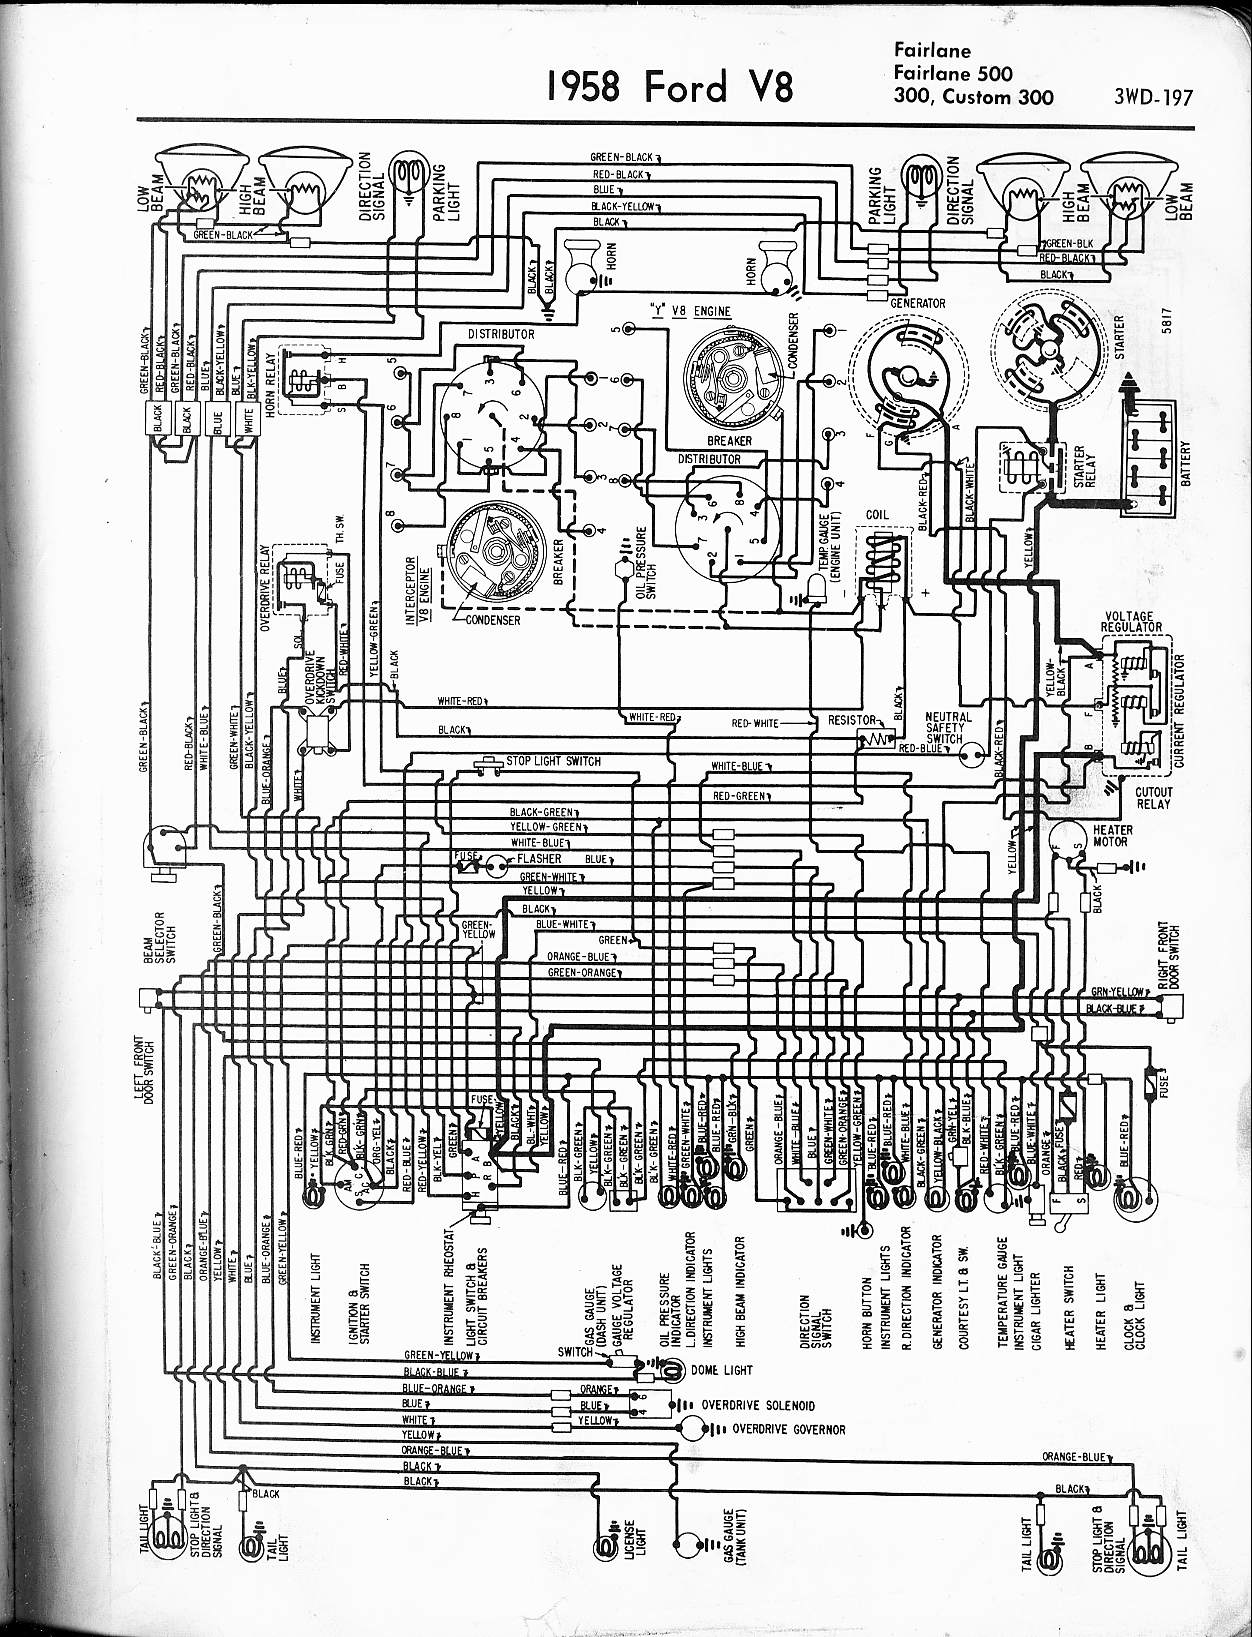 1966 Thunderbird Engine Diagram | Wiring Diagram on 1968 camaro wiring schematic, 1970 camaro wiring schematic, 1968 corvette ignition switch, 1967 chevelle wiring schematic, 1968 corvette electrical schematic, 1968 vw wiring schematic, 1968 volkswagen wiring schematic, wiper motor wiring schematic, 1967 gto wiring schematic, 1968 mustang wiring schematic, 1968 corvette hood, 1968 corvette engine, 1969 chevelle wiring schematic, 1968 corvette parts layout, 1968 firebird wiring schematic, 1968 el camino wiring schematic, 1968 corvette starter wiring, 1968 corvette gauges, 1968 chevelle wiring schematic, 1968 corvette alternator wiring,